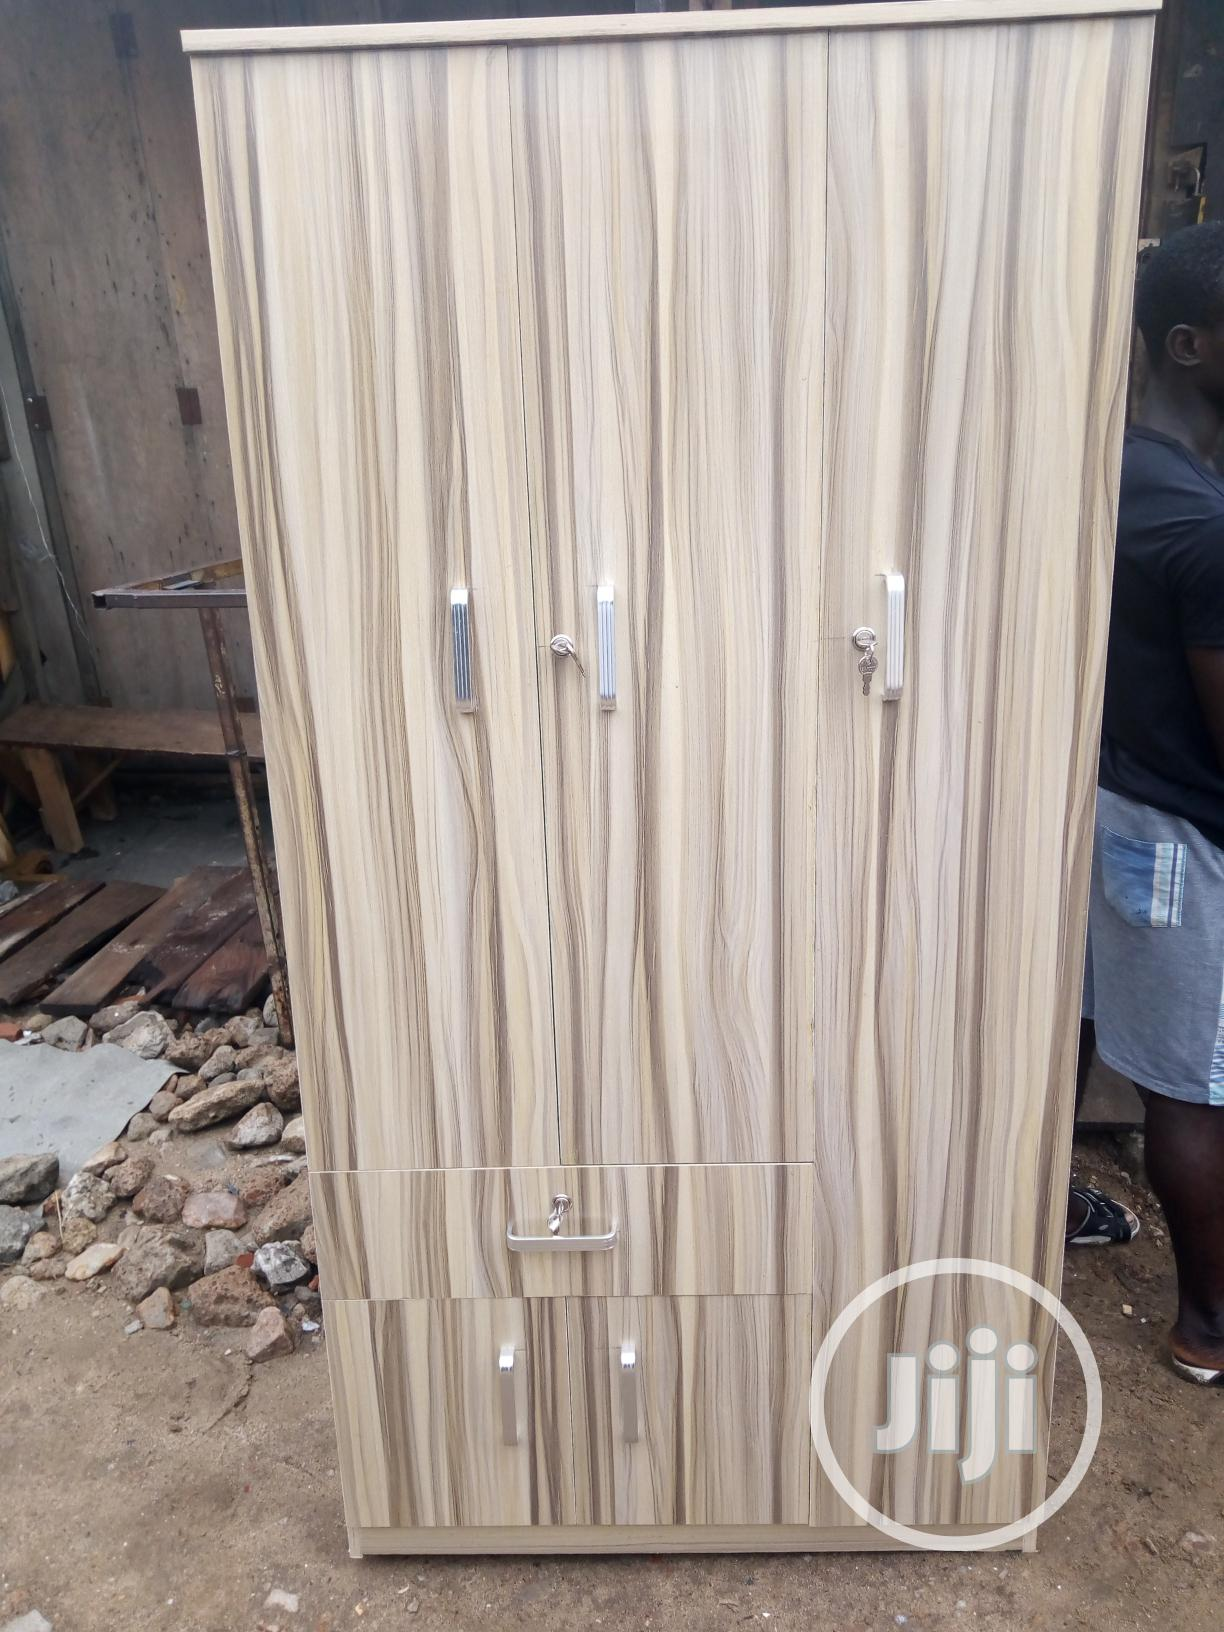 6ft X 3ft Wardrobe   Furniture for sale in Isolo, Lagos State, Nigeria